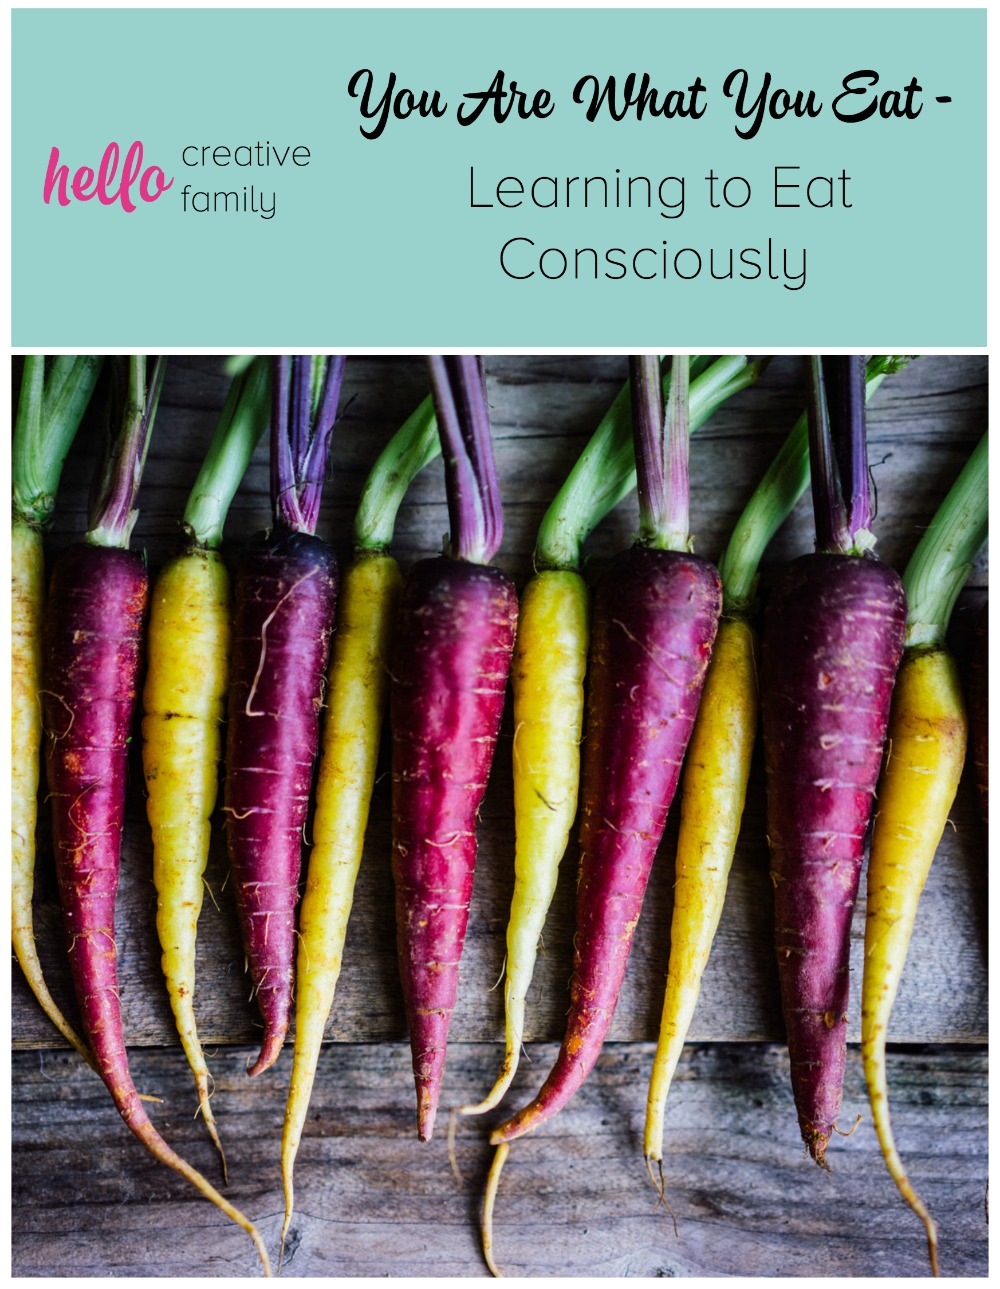 You Are What You Eat - Learning to Eat Consciously